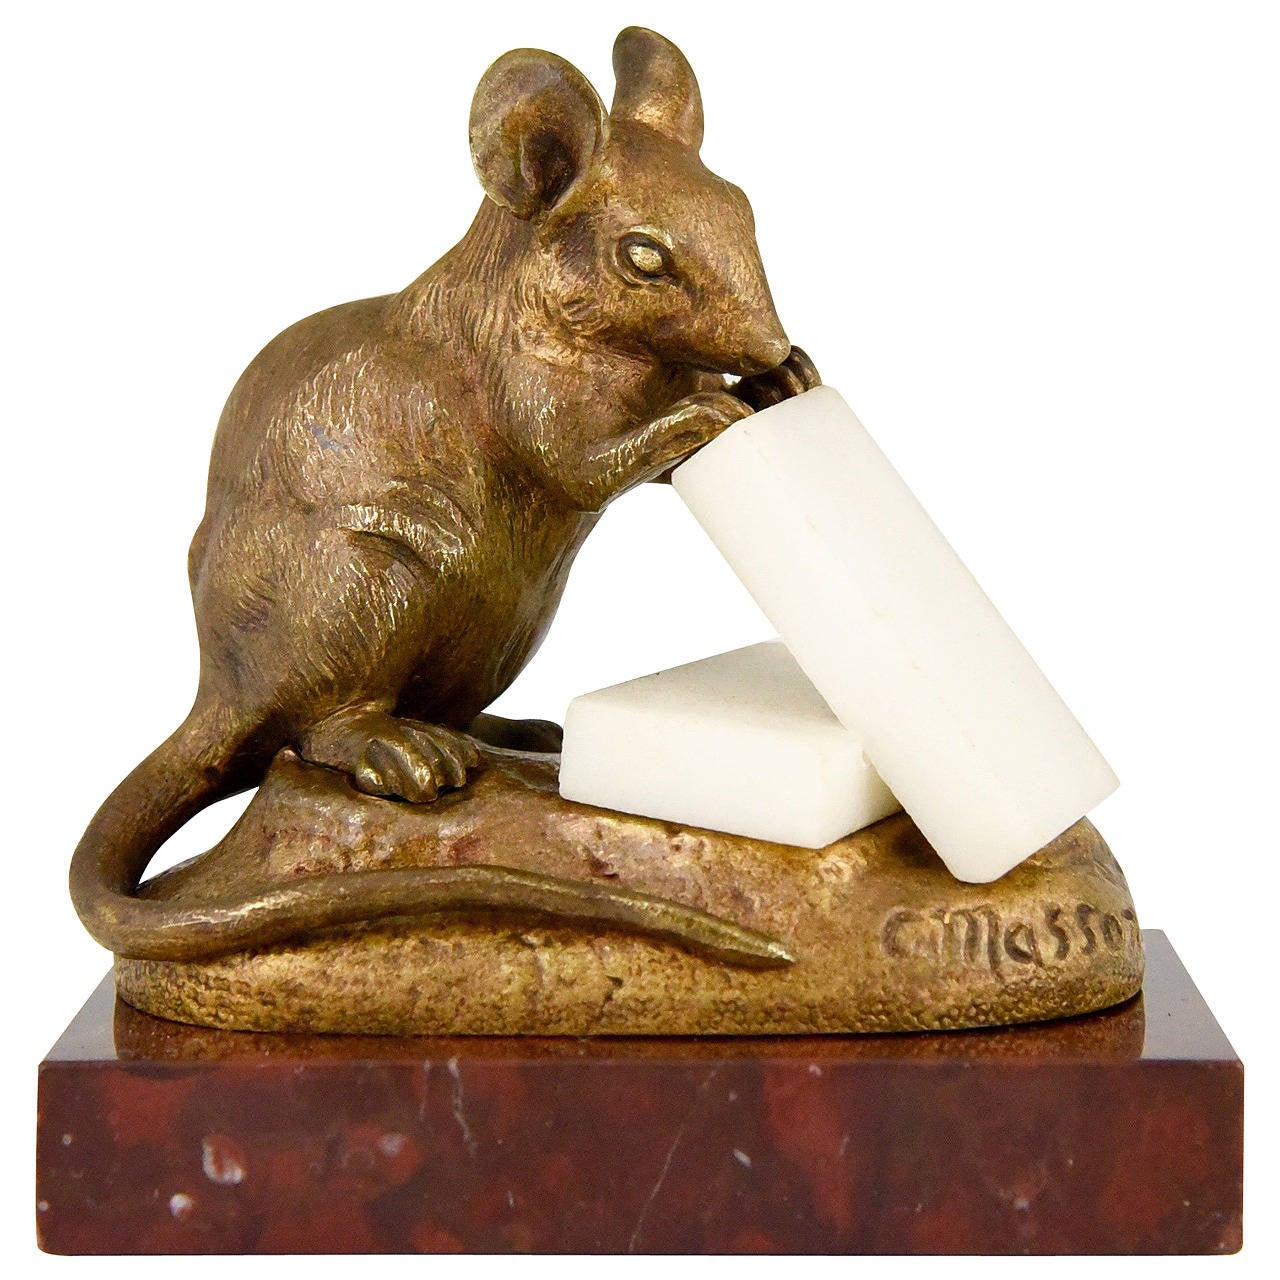 Antique Bronze Sculpture of a Mouse with Cheese by Clovis Masson 1880